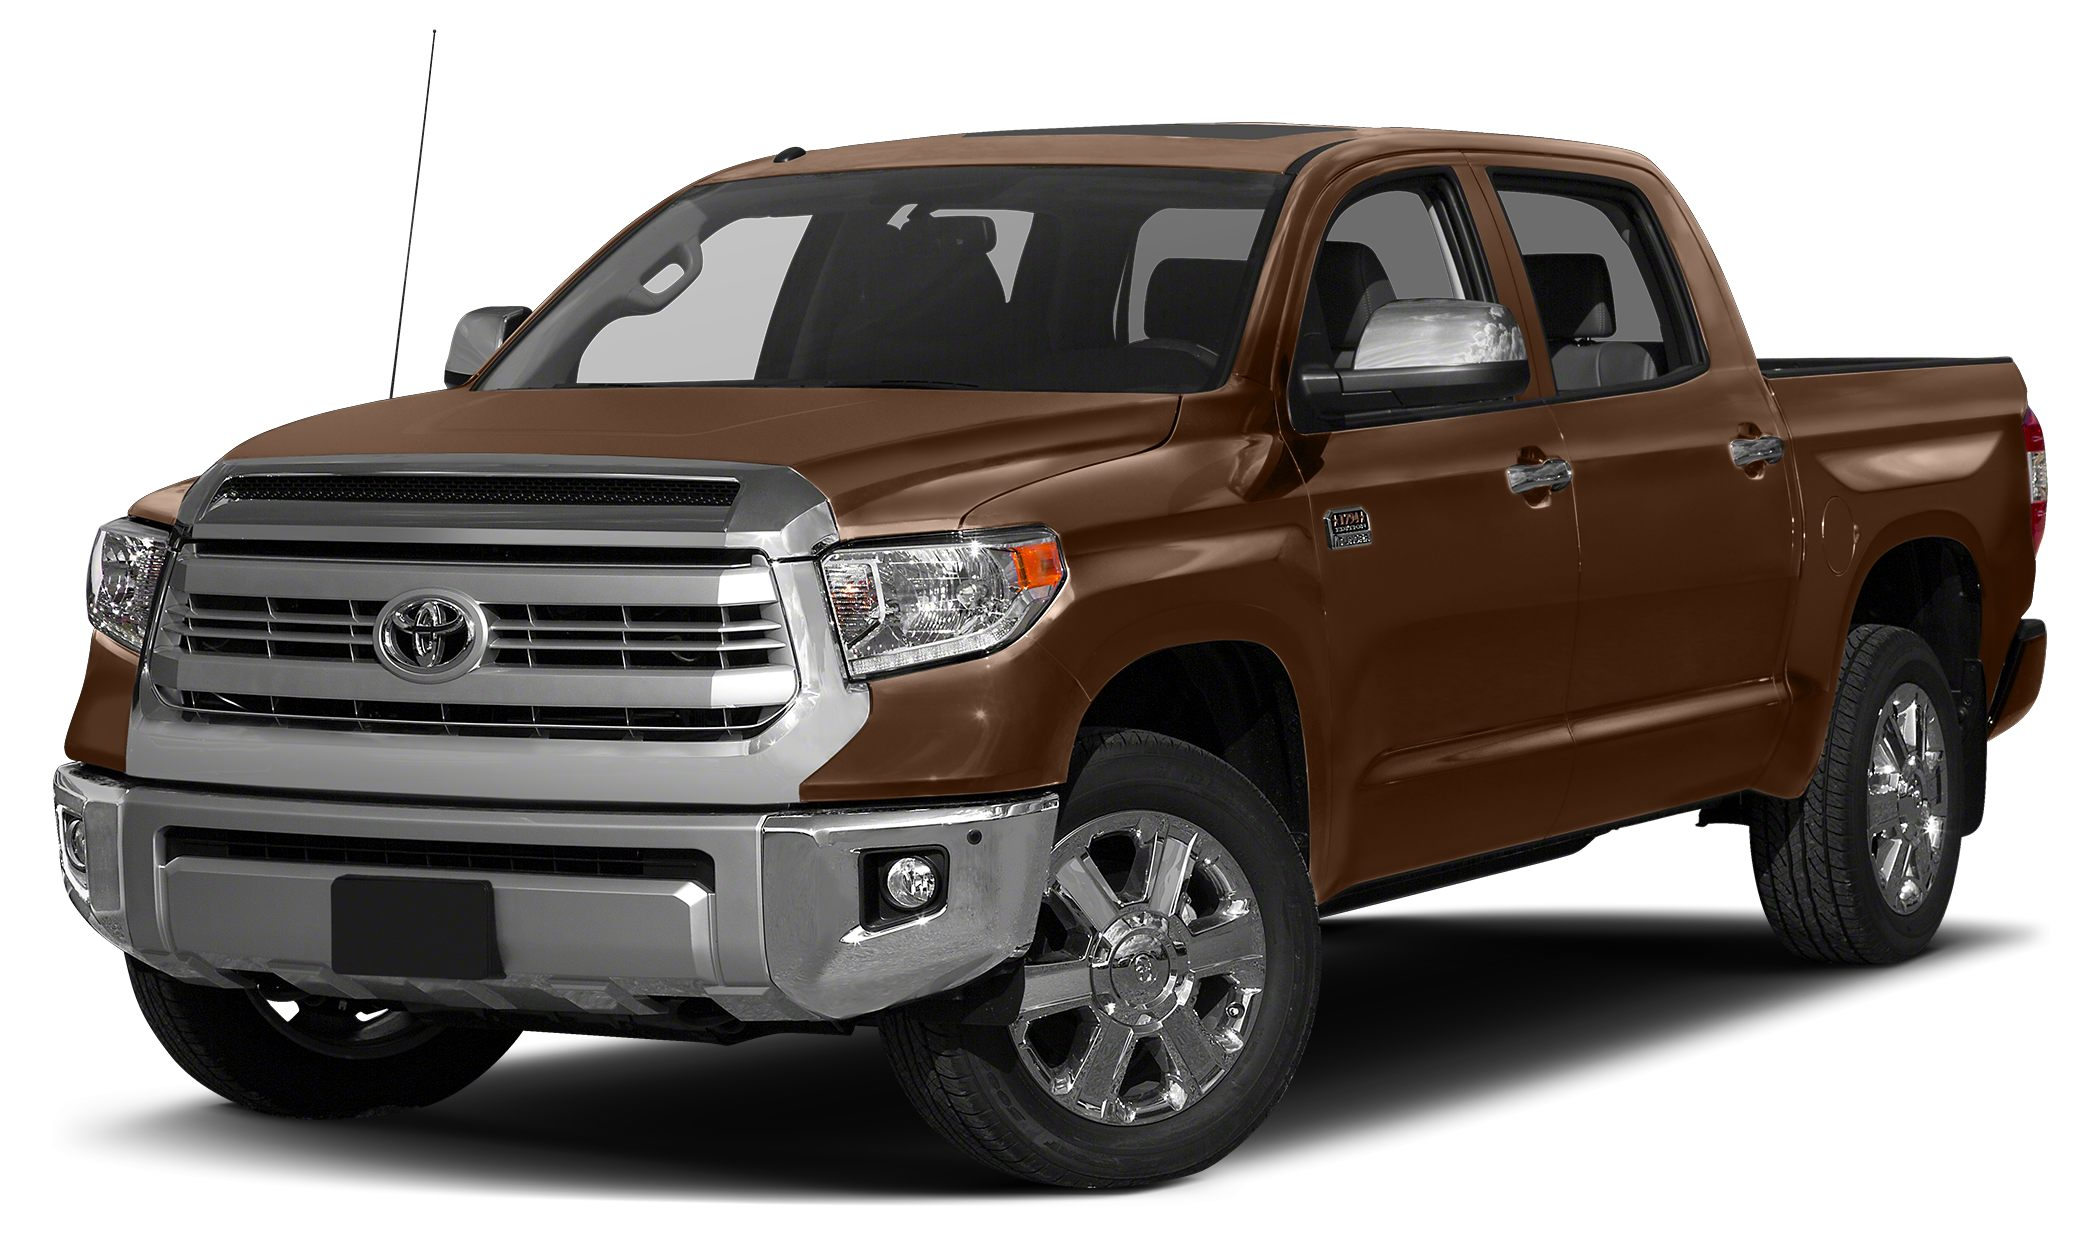 2016 Toyota Tundra 1794 Miles 0Color Sunset Bronze Mica Stock 07353 VIN 5TFGW5F19GX207353